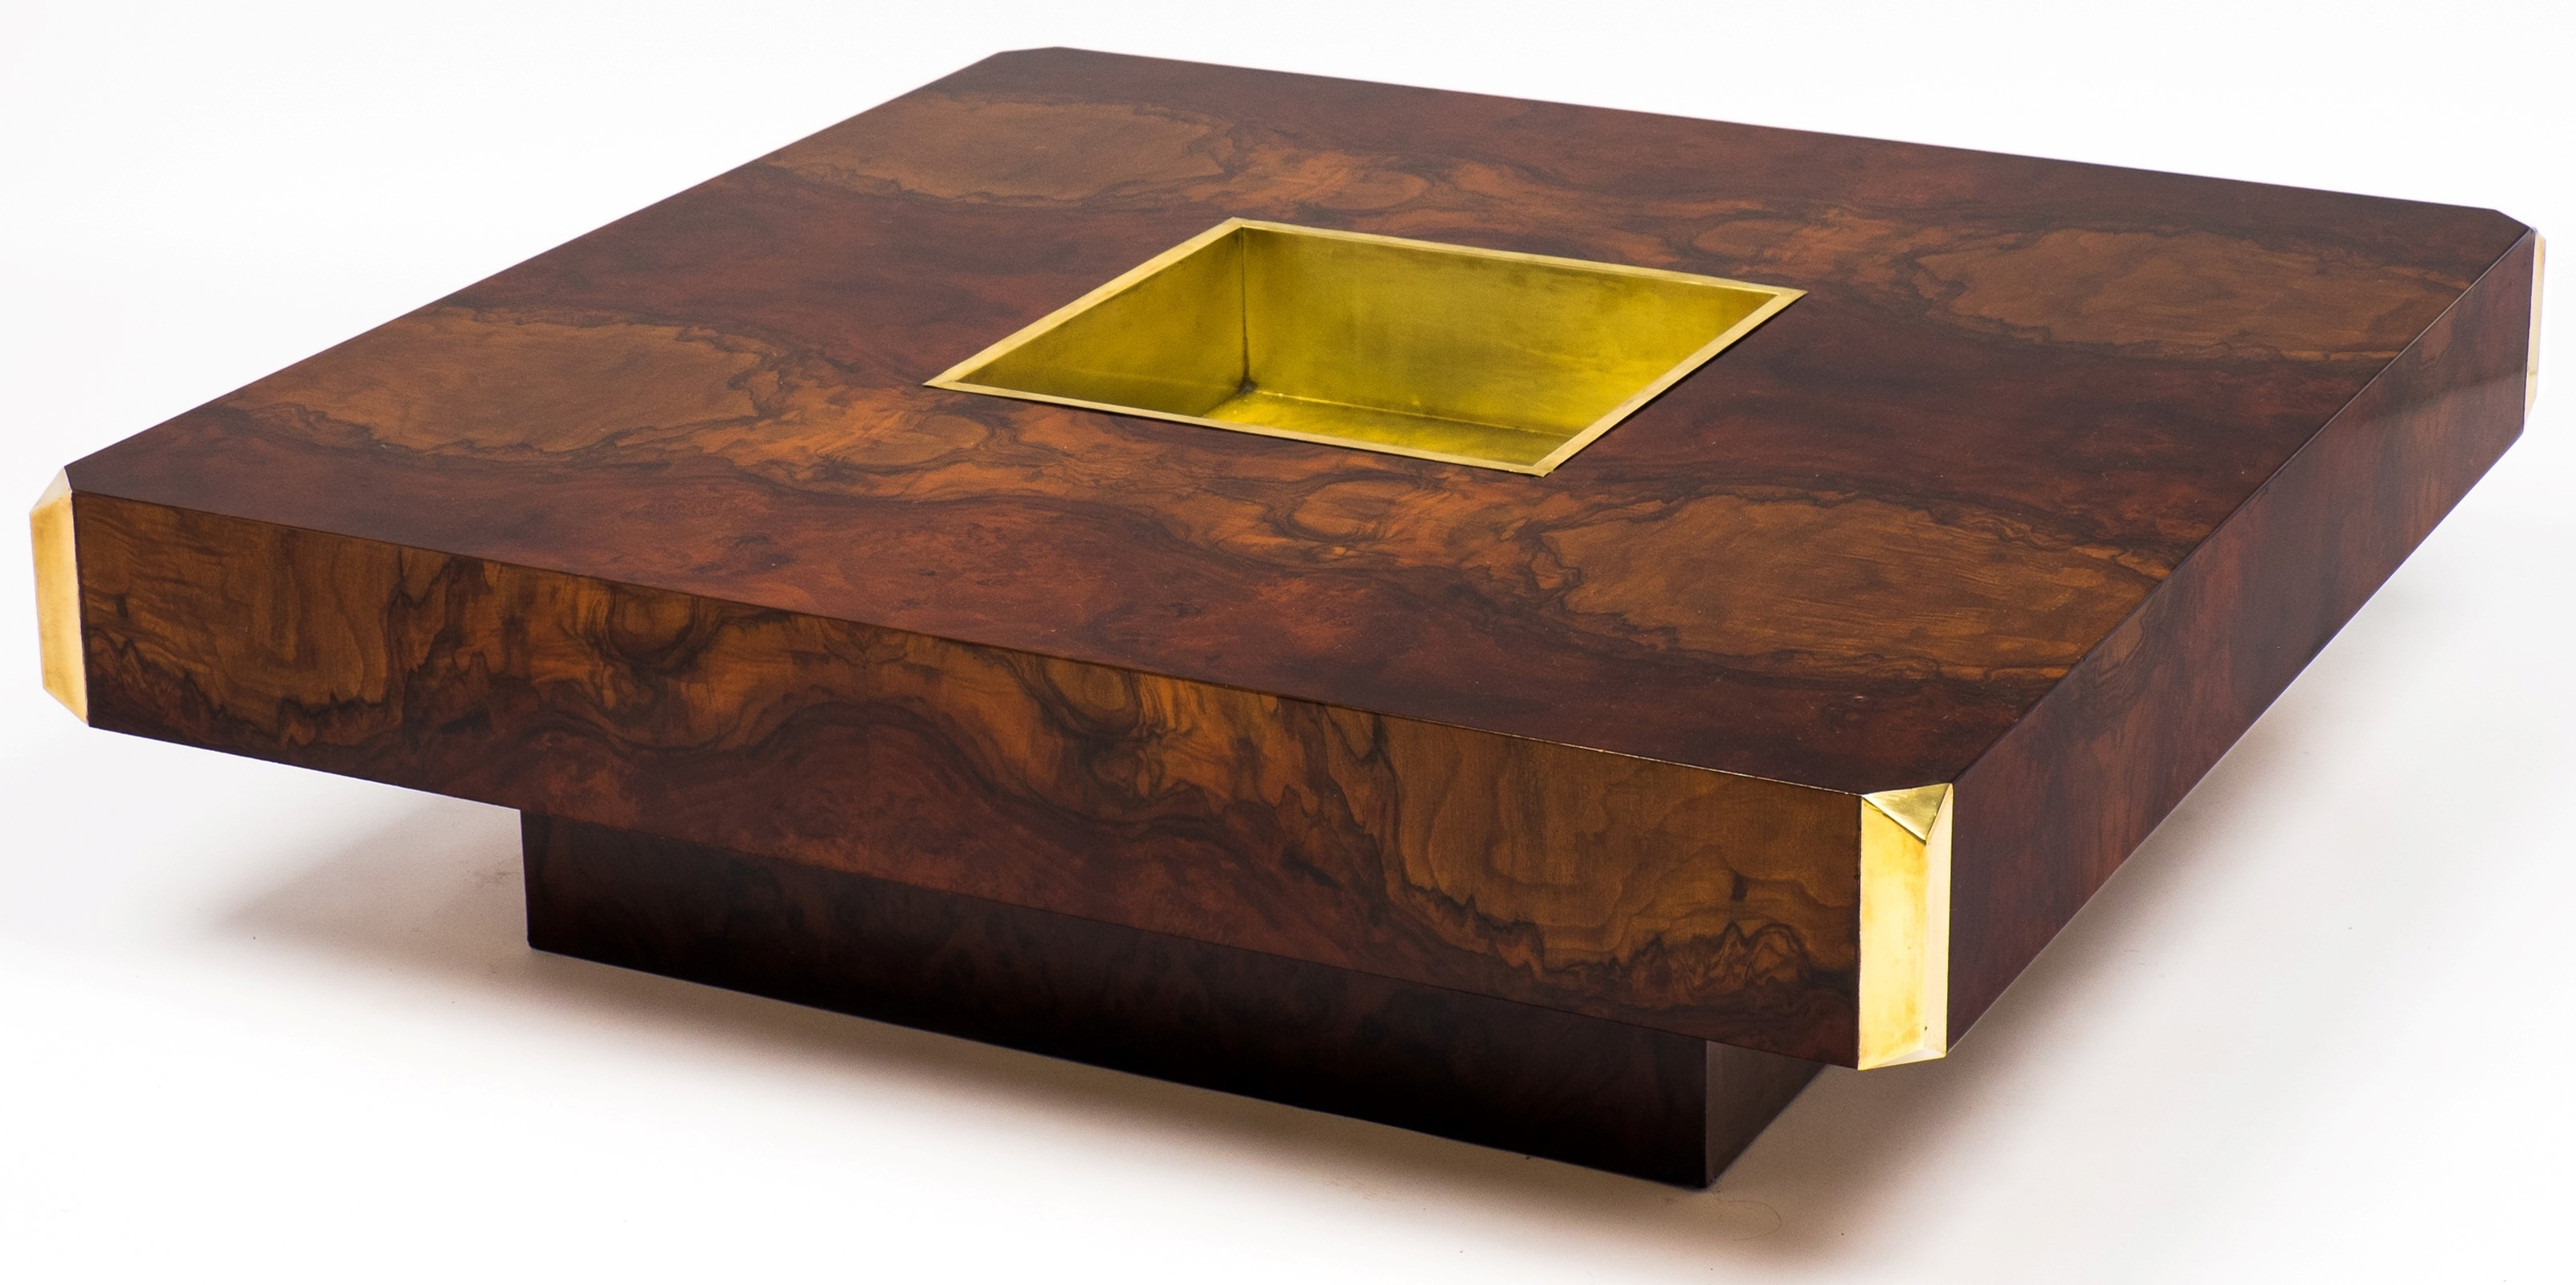 Burl Wood Coffee Table Furniture - Coffee Table Ideas regarding Oslo Burl Wood Veneer Coffee Tables (Image 5 of 30)